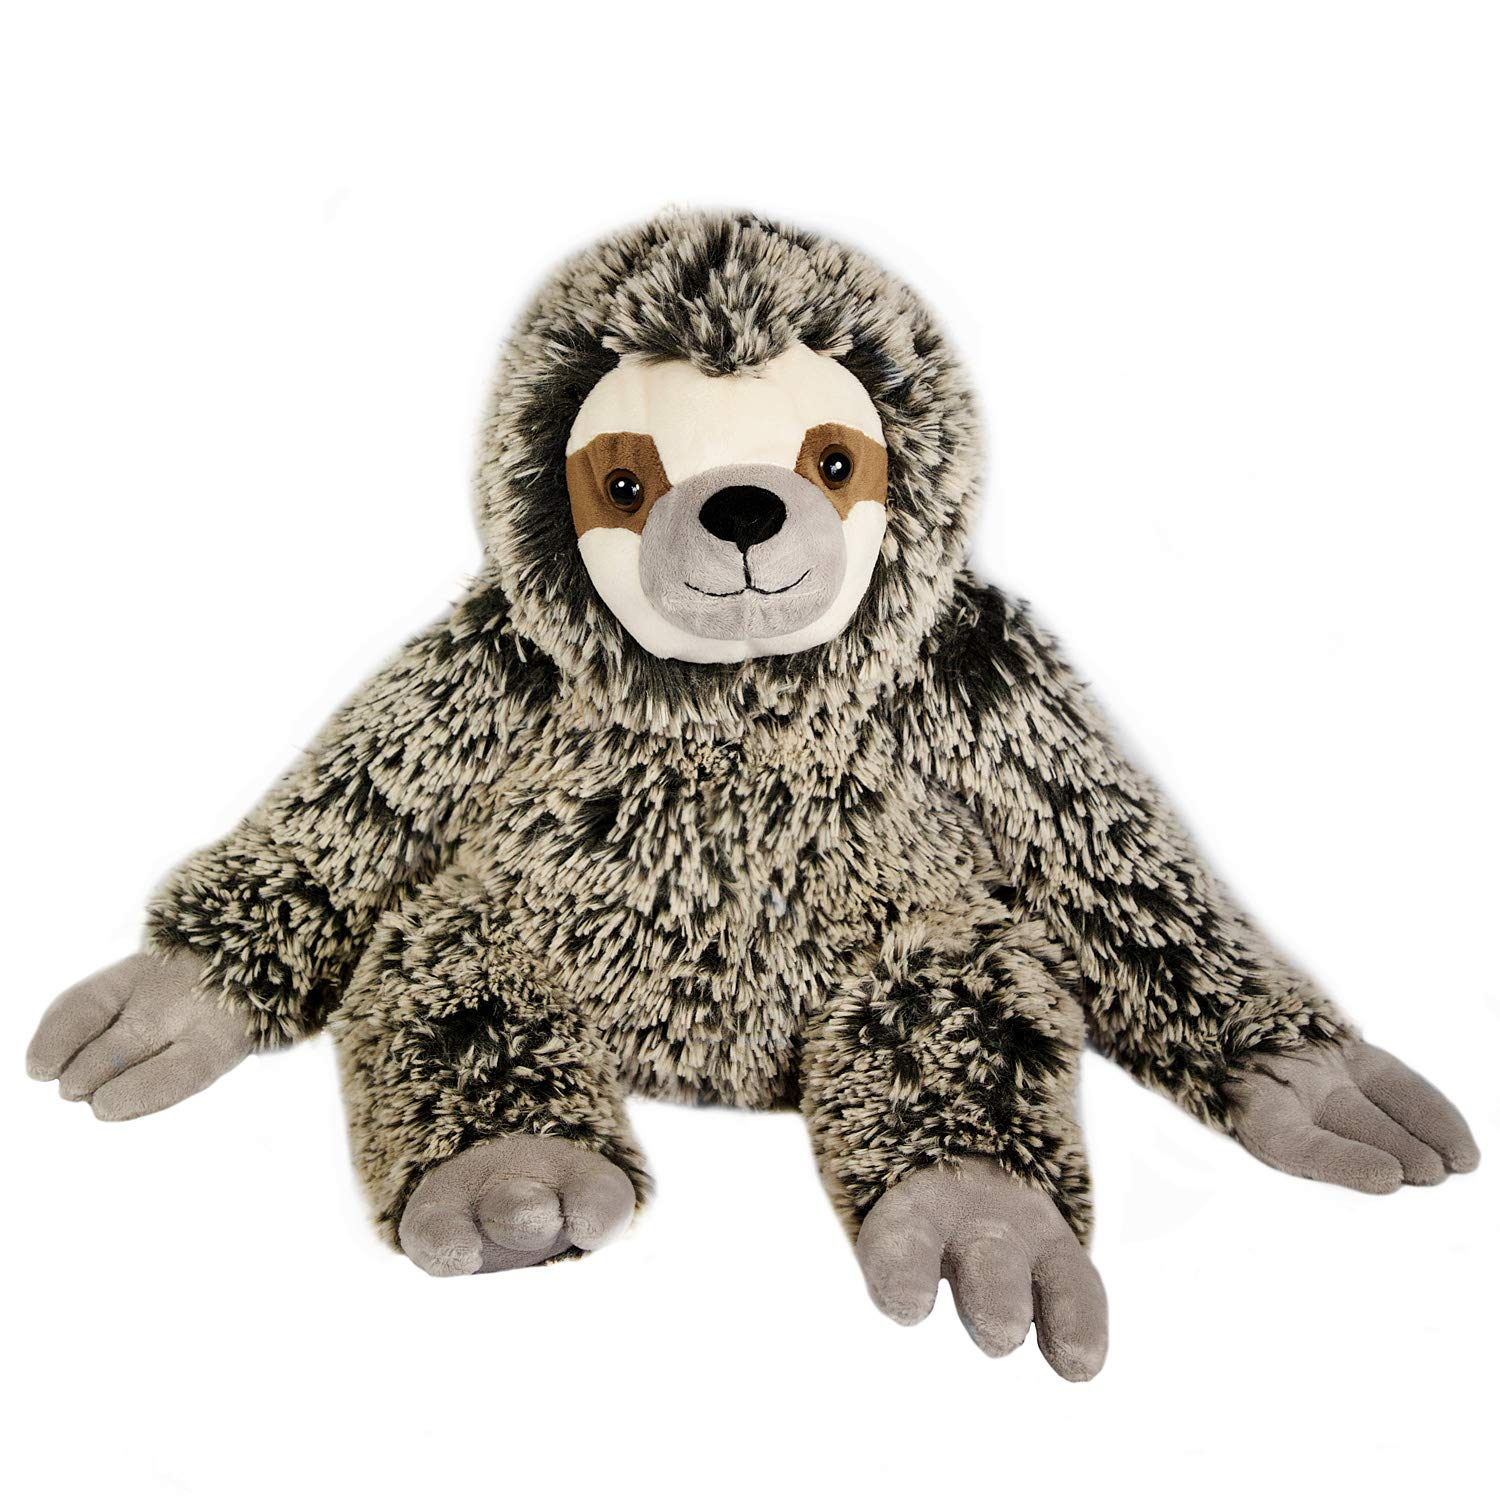 The Petting Zoo - 25'' Soft Frosted Brown Sloth - Stuffed Animal Toy - Great for Baby/Toddlers/Kids - Boys & Girls by The Petting Zoo